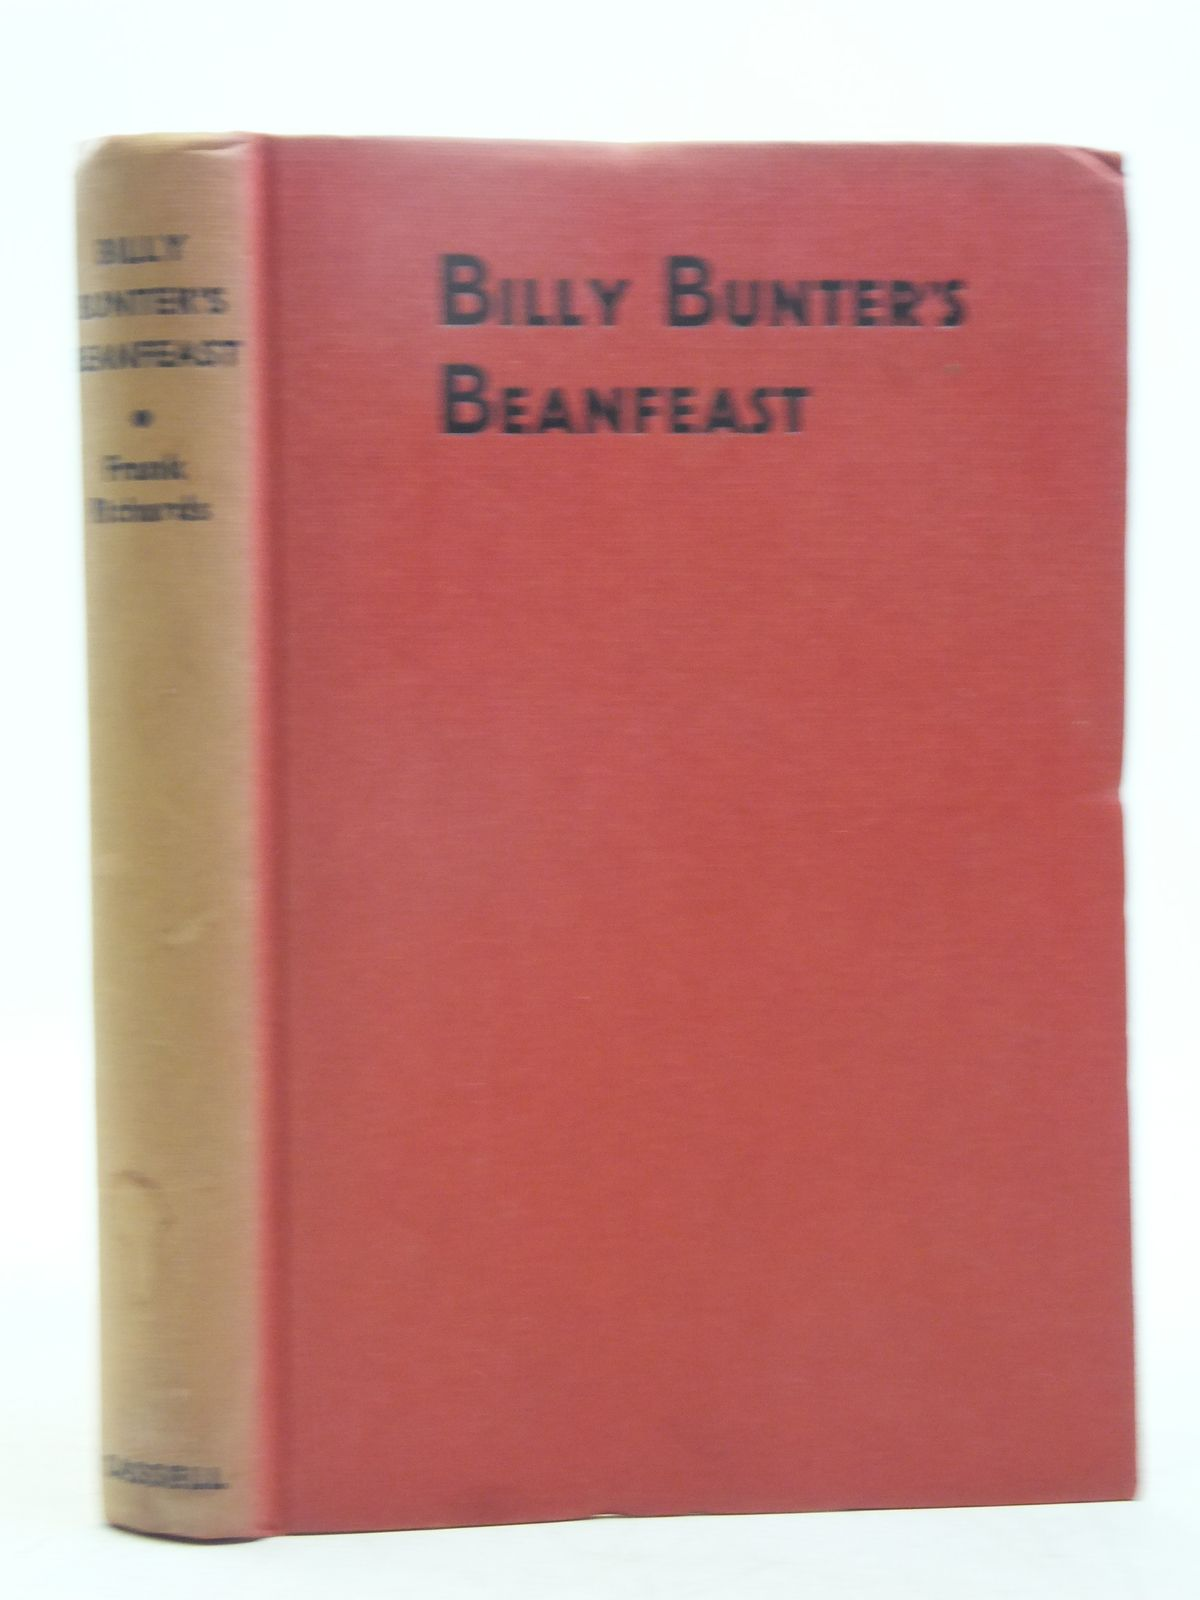 Photo of BILLY BUNTER'S BEANFEAST